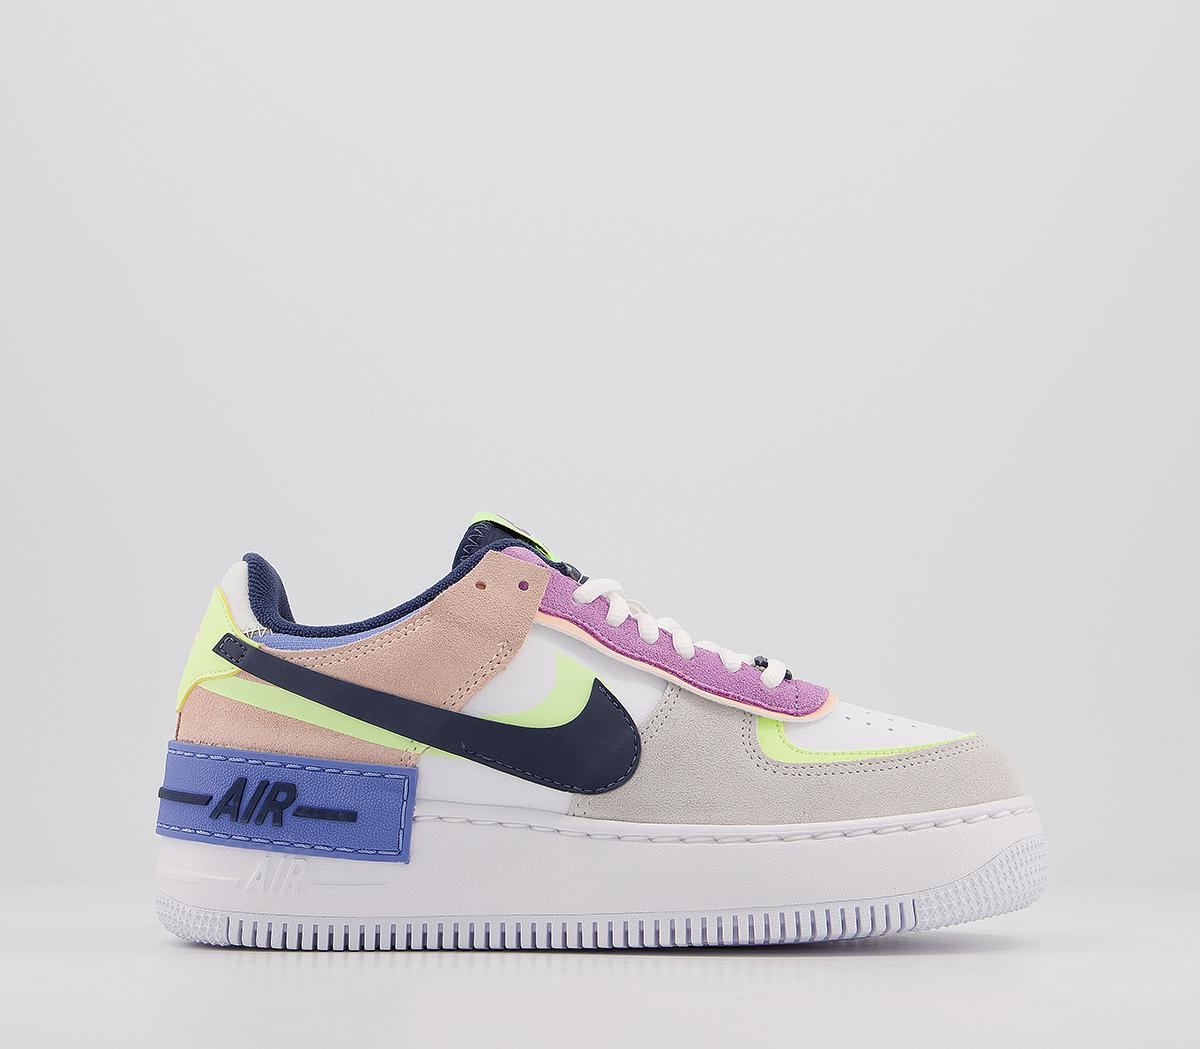 Nike Air Force 1 Shadow Photon Dust Royal Pulse Barely Volt Unisex Sports Nike air force 1 low. air force 1 shadow